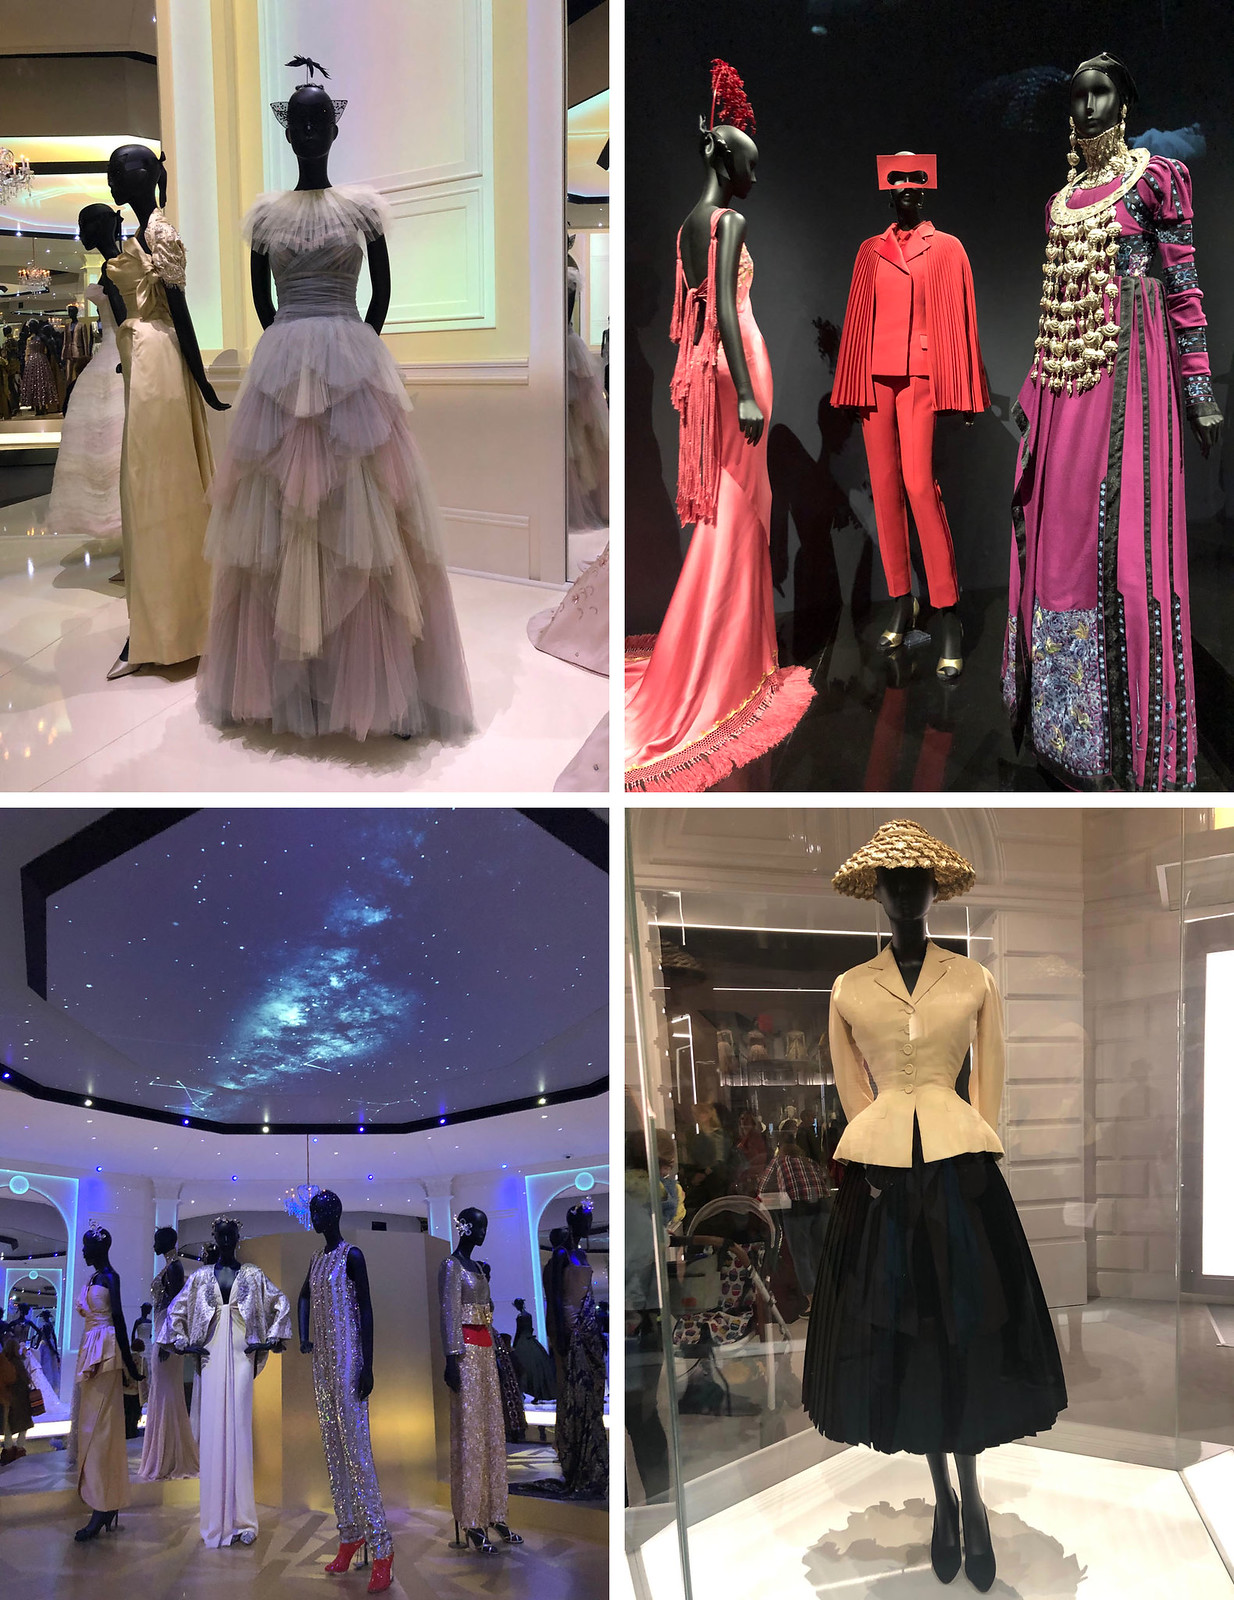 Not Dressed As Lamb, My Year in Review (Part 2 of 3): Christian Dior at the V&A Museum, London